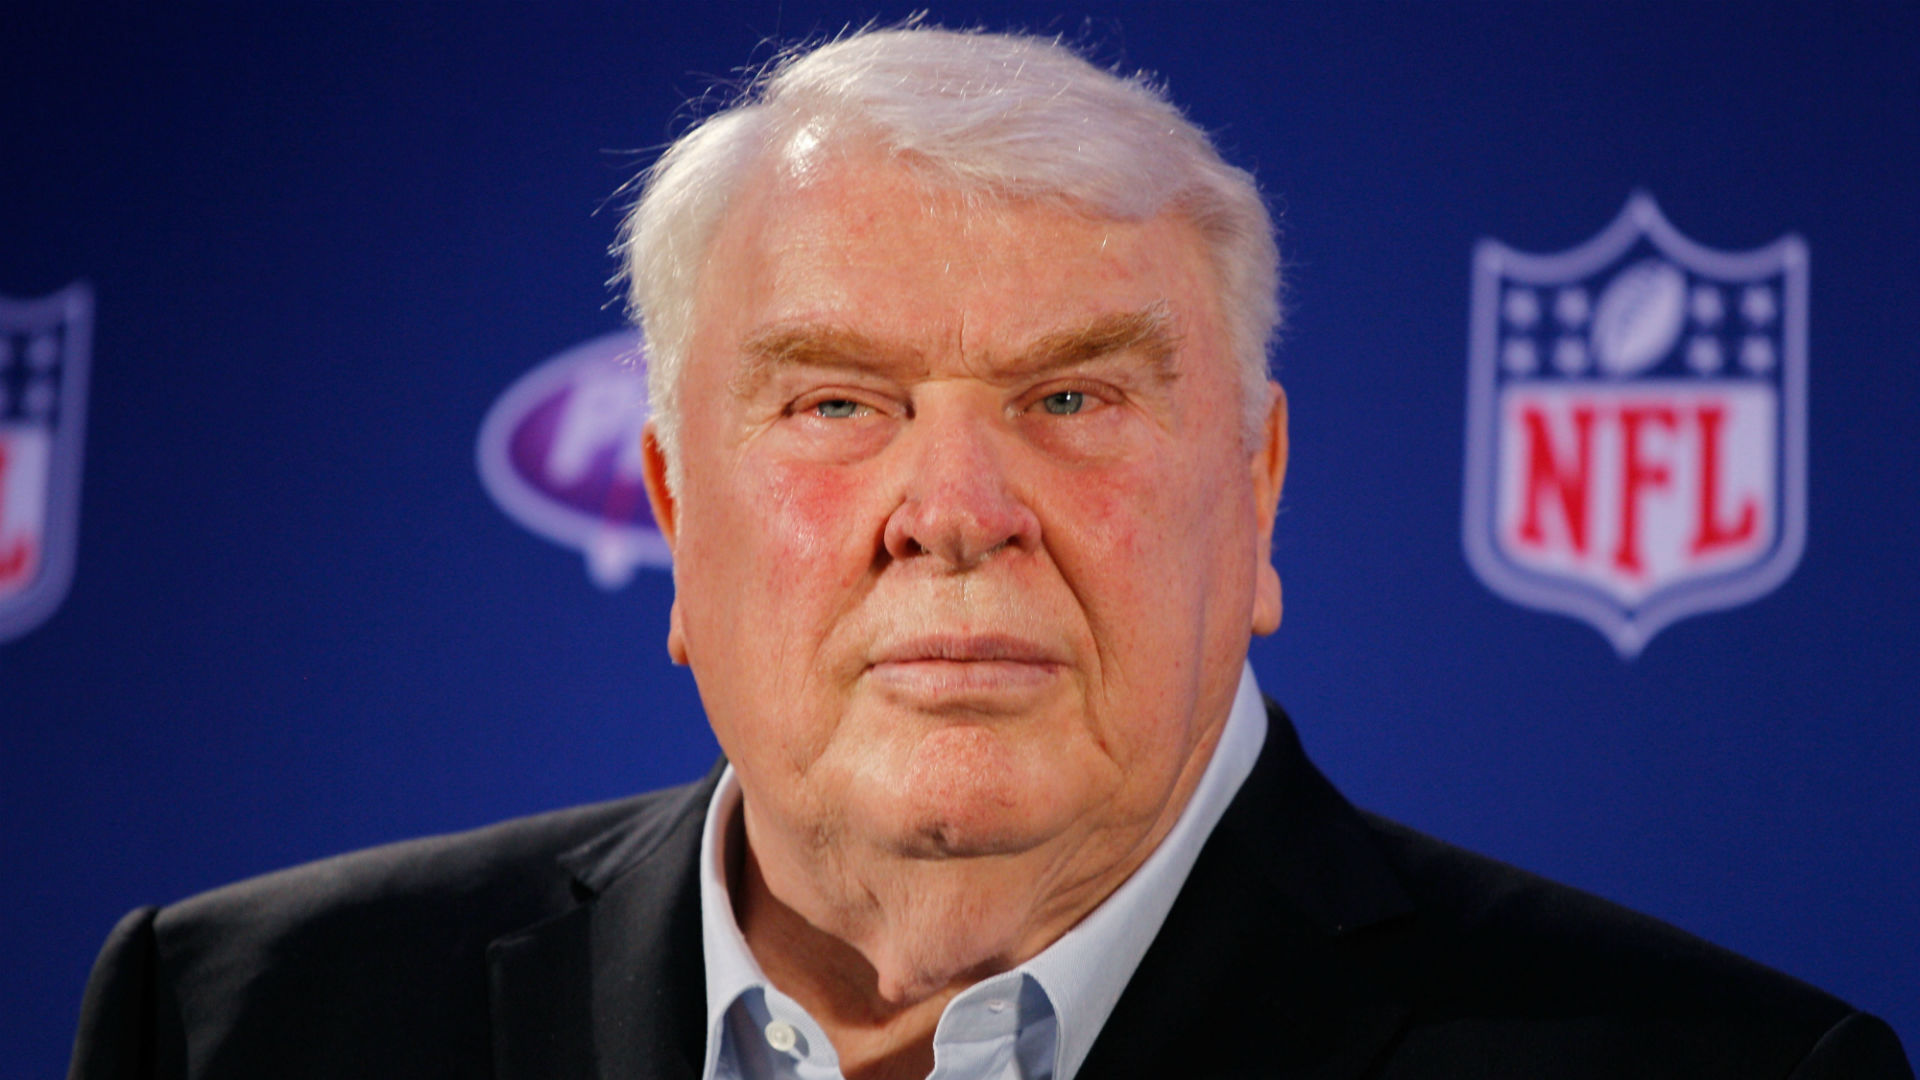 john madden pizzajohn madden moonbase alpha, john madden pizza, john madden nfl, john madden football 92, john madden lyrics, john madden nhl, john madden pitcher, john madden hockey, john madden height, john madden films, john madden interview, john madden nasa, john madden voice, john madden chief keef, john madden football, john madden sales website, john madden dublin, john madden film director, john madden ireland, john madden chief keef lyrics